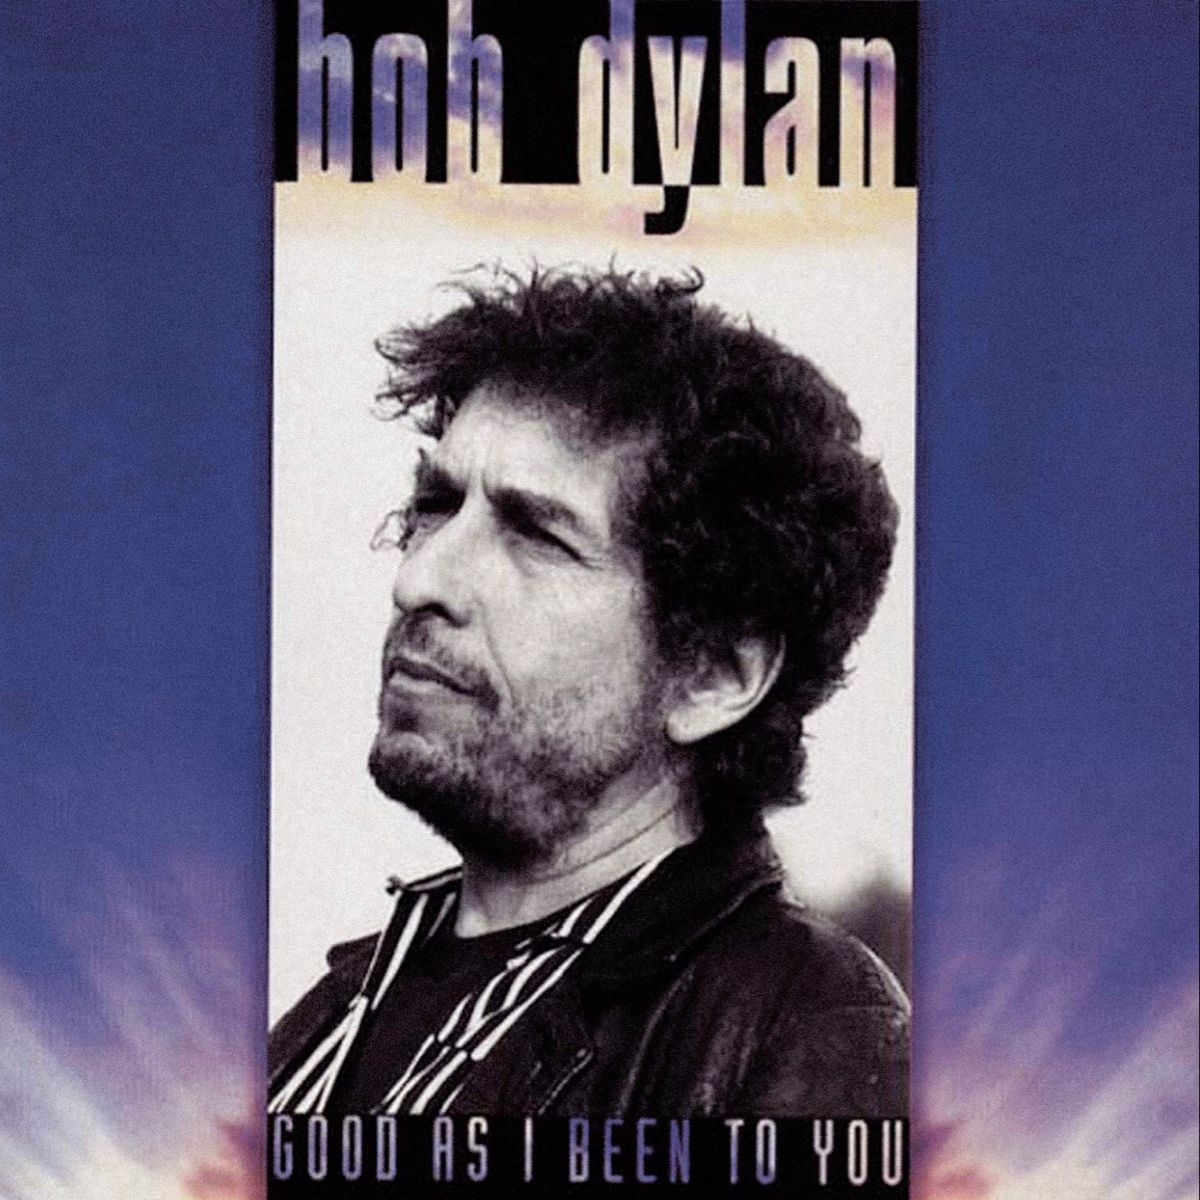 Good As I Been To You 1992 In 2020 Bob Dylan Dylan Bob